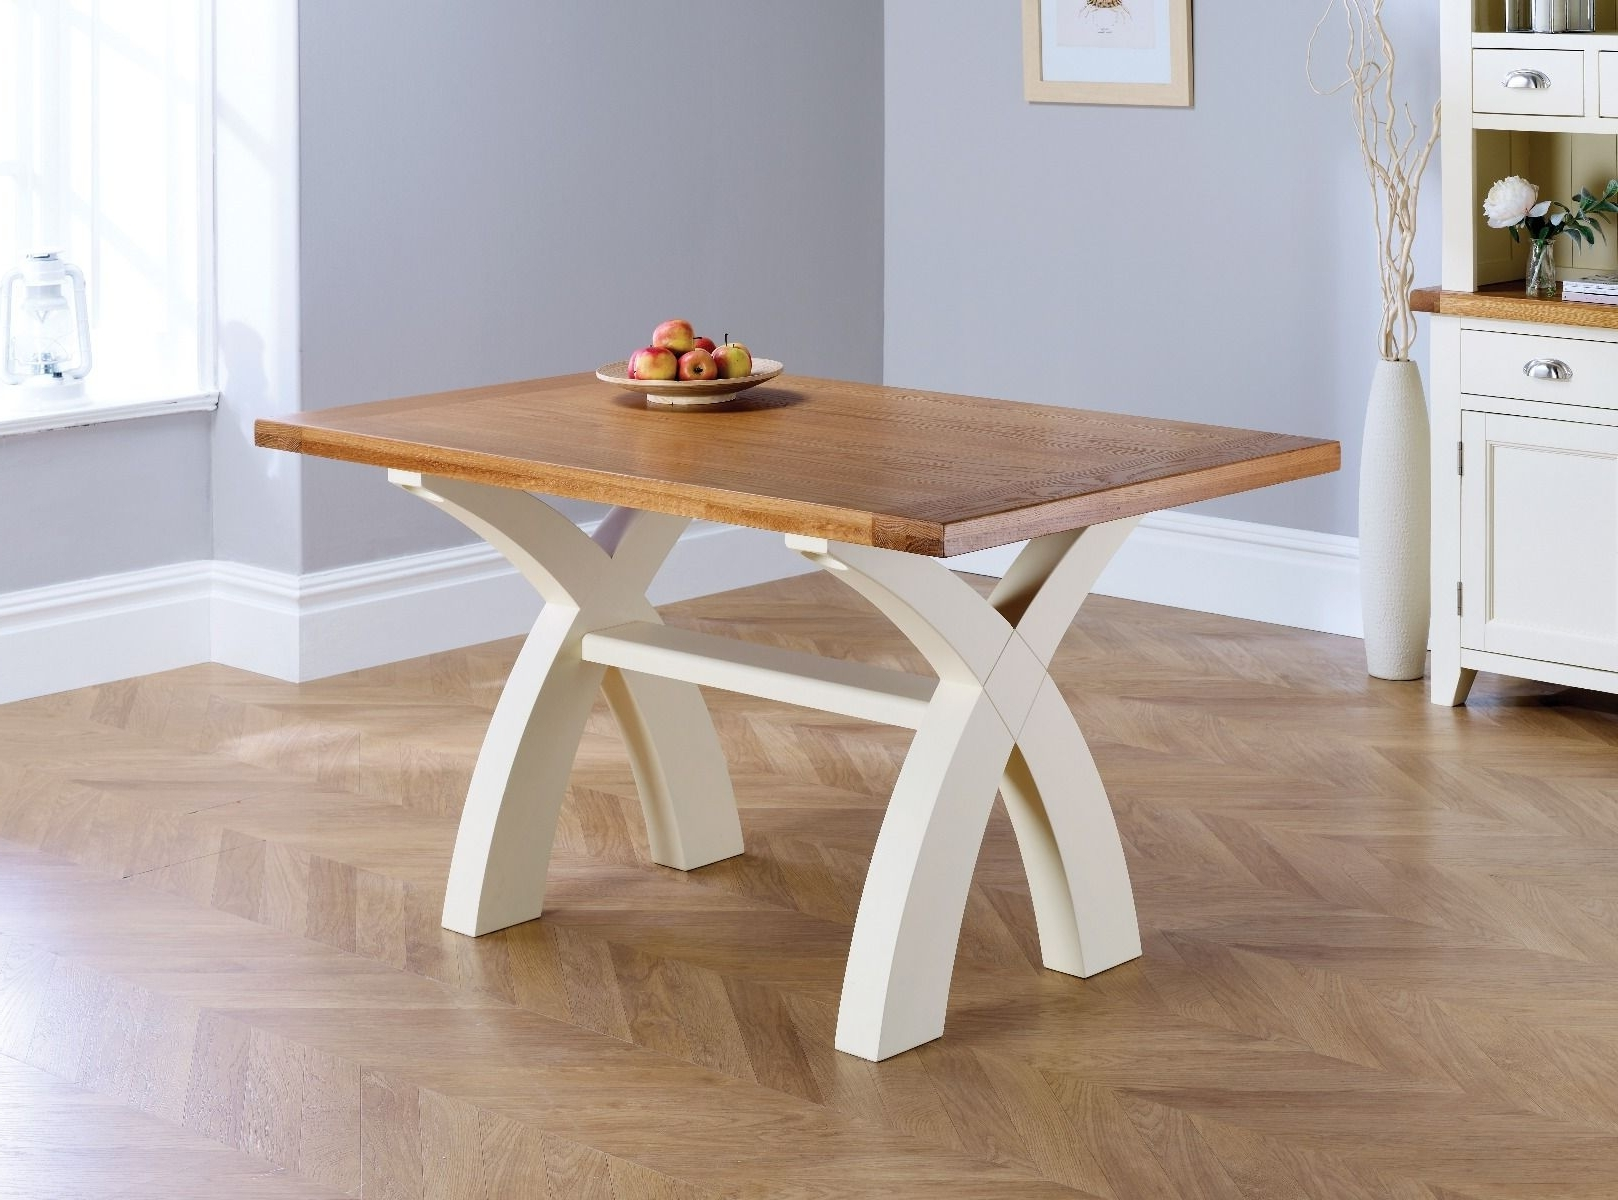 Fashionable Cream And Wood Dining Tables Inside Country Oak 140Cm Cream Painted Cross Leg Square Ended Dining Table (View 15 of 25)